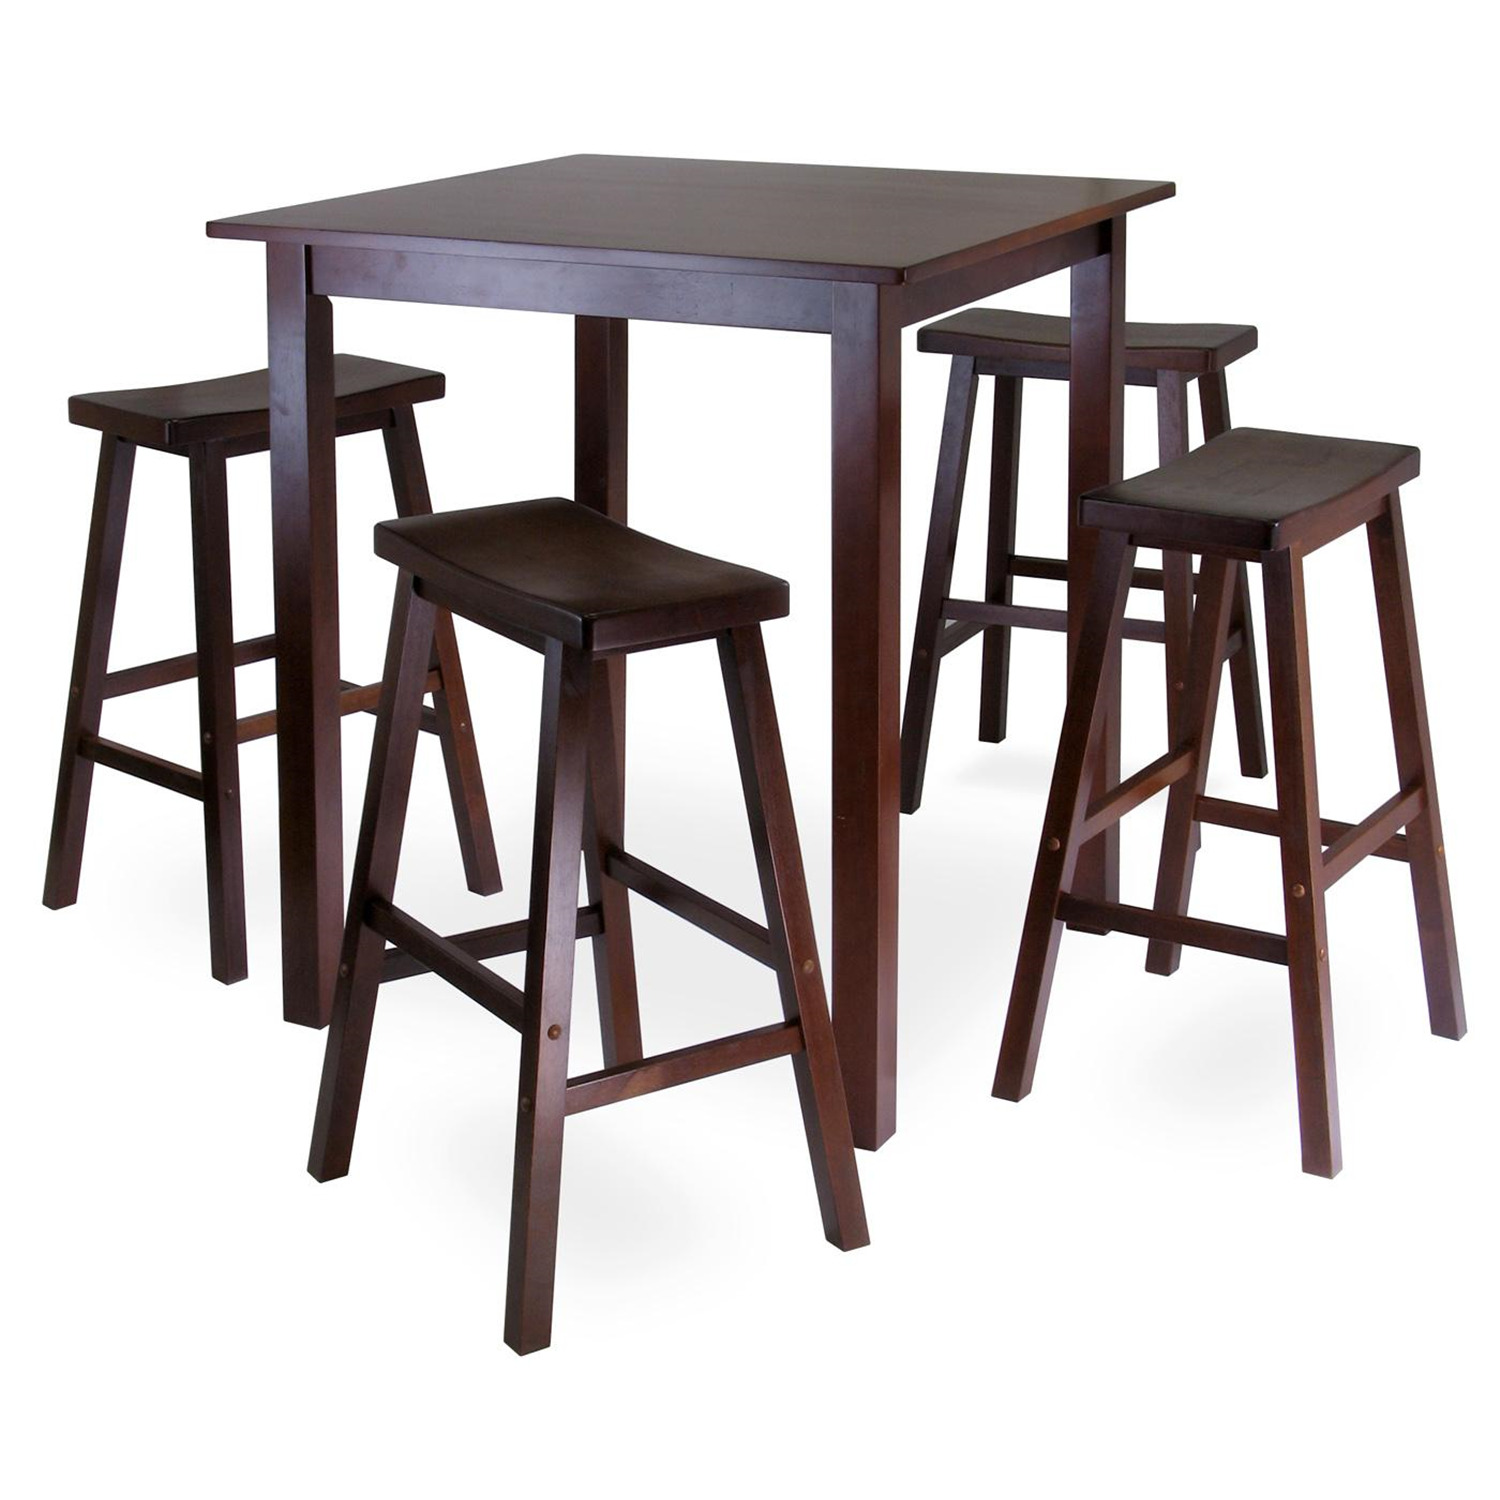 high bar table and chair set egg garden morrisons parkland 5pc square pub with 4 saddle seat